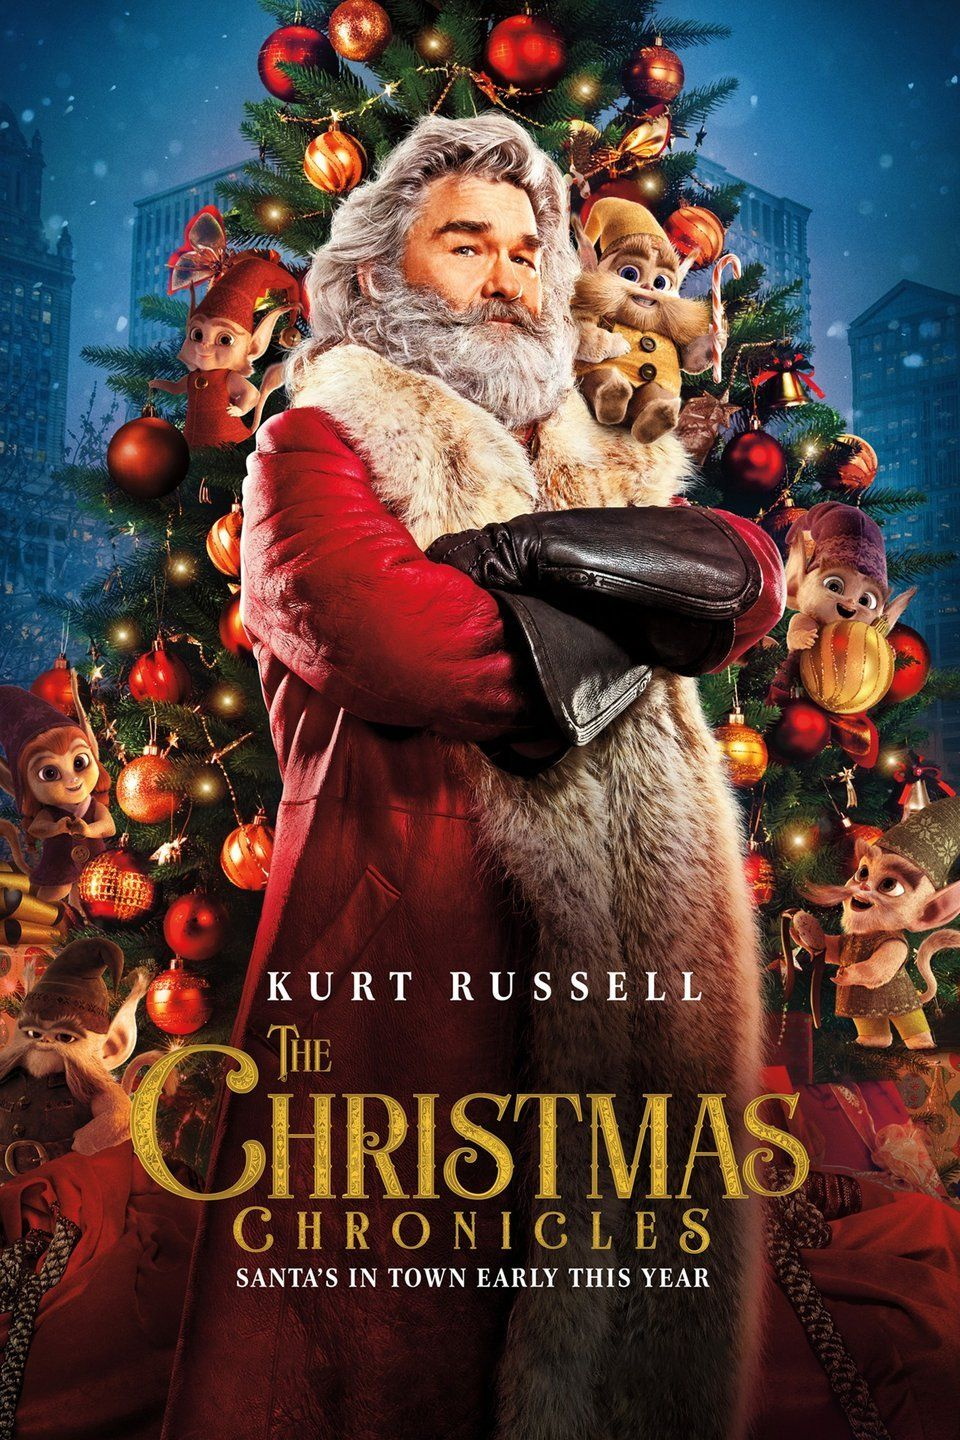 Have A Christmas Netflix Marathon With These Movies Available Right Now In 2020 Best Christmas Movies Christmas Movies Best Holiday Movies